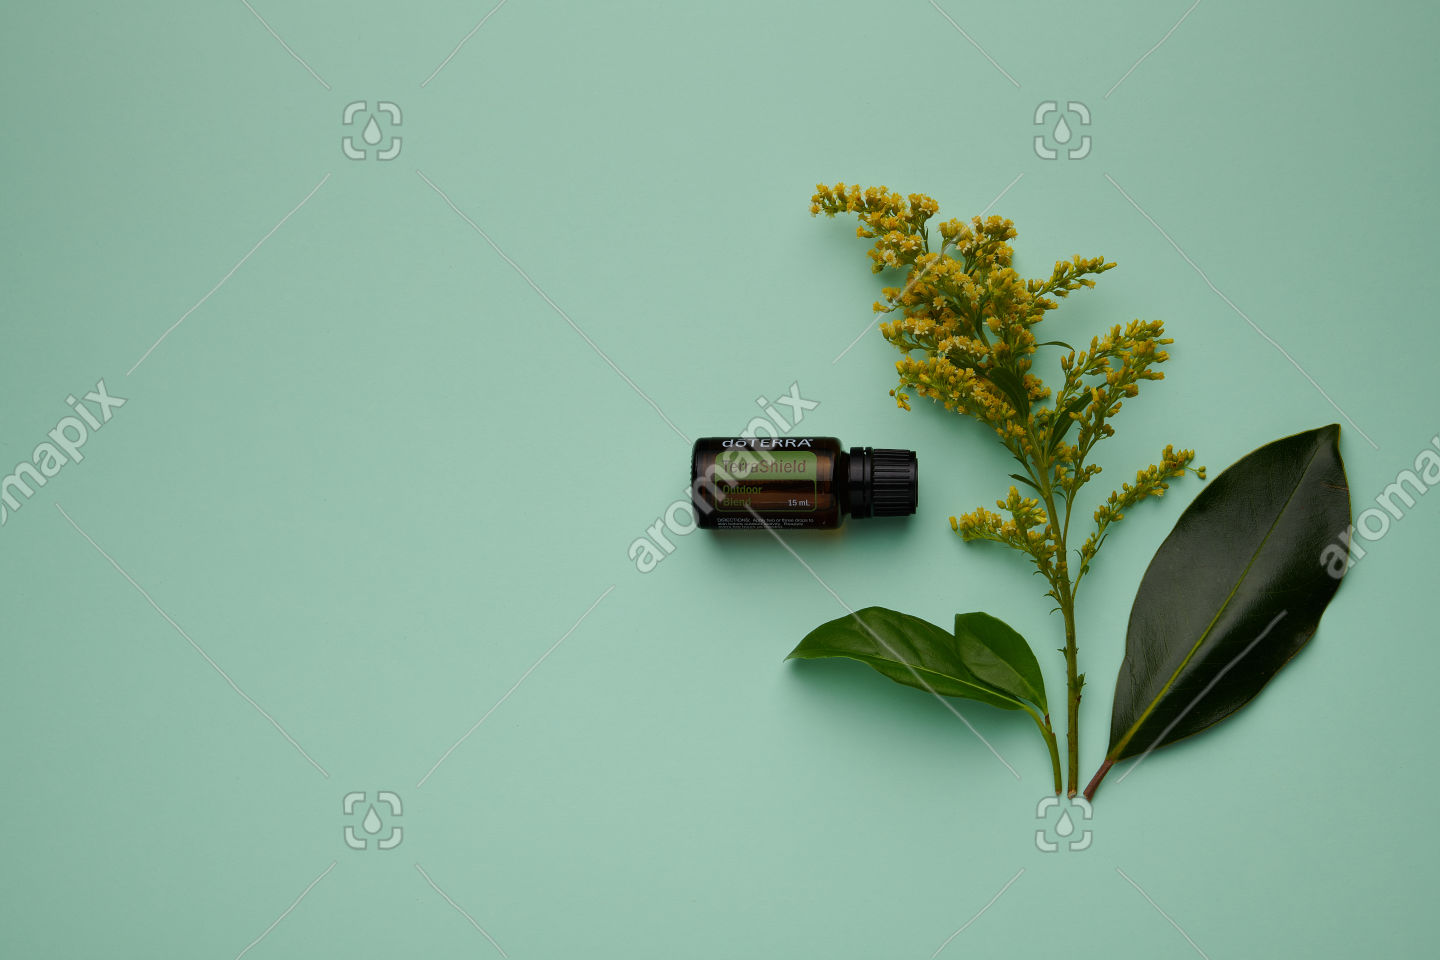 doTERRA TerraShield with flowers and leaves on green